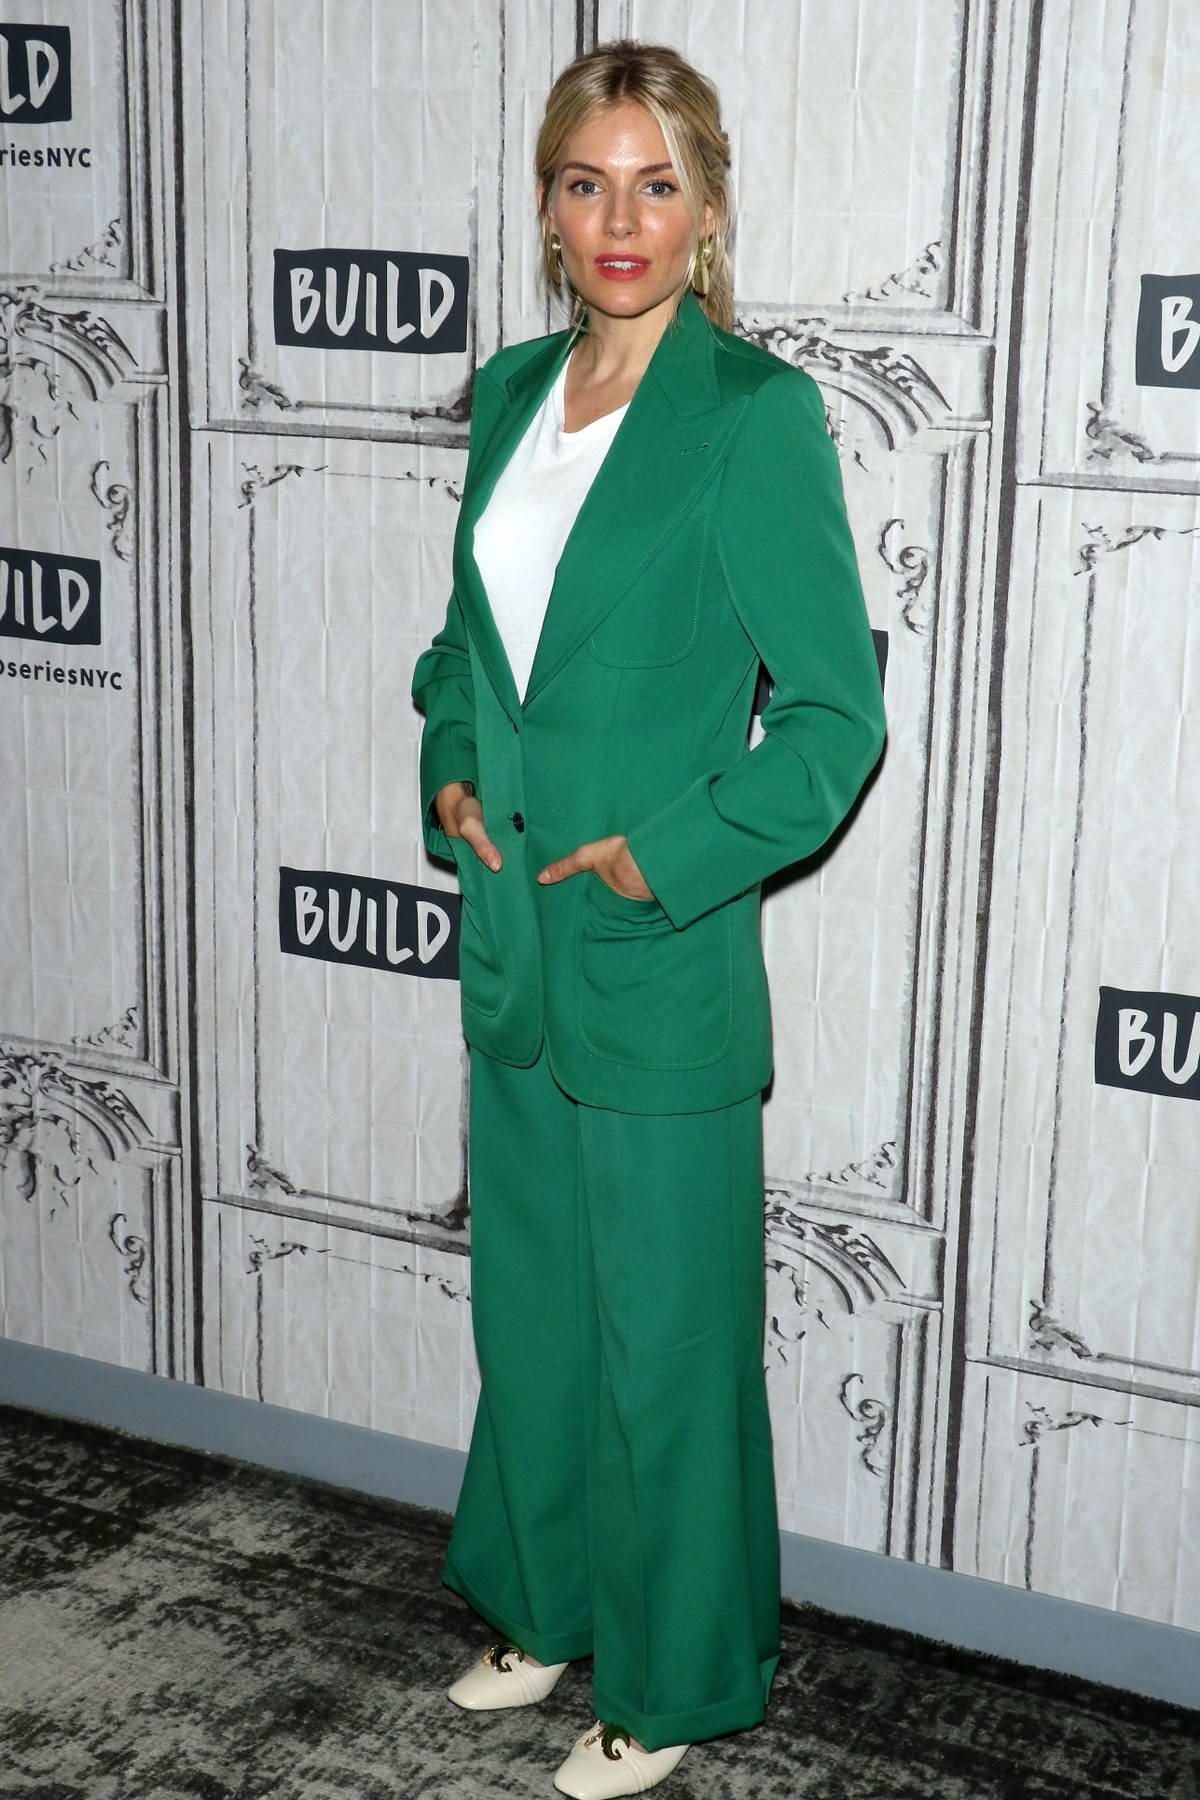 Sienna Miller visits the Build Series to discuss 'The Loudest Voice' at Build Studio in New York City